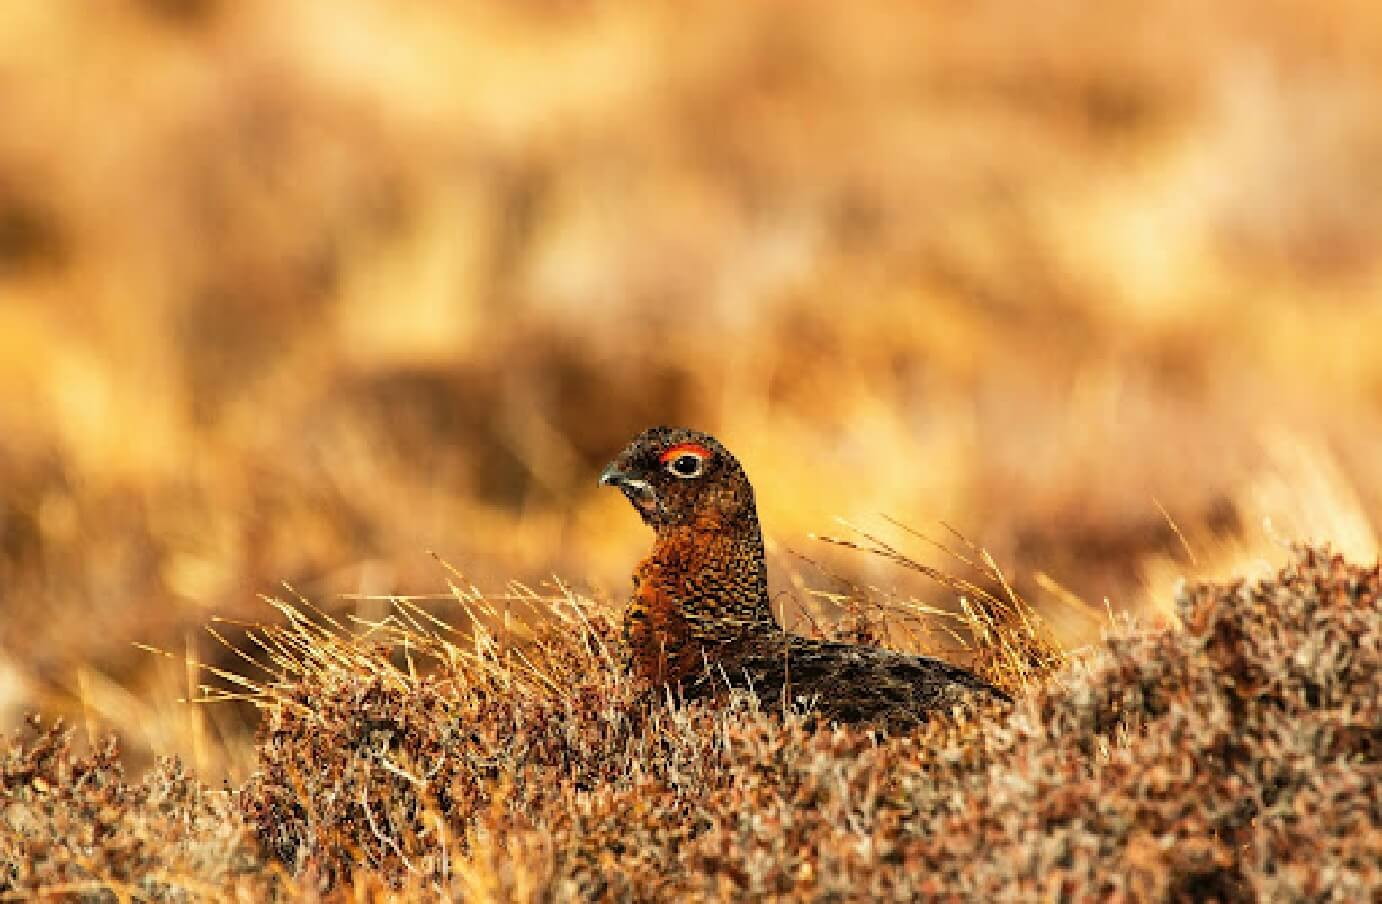 Photograph of a Sooty Grouse laying down in a field